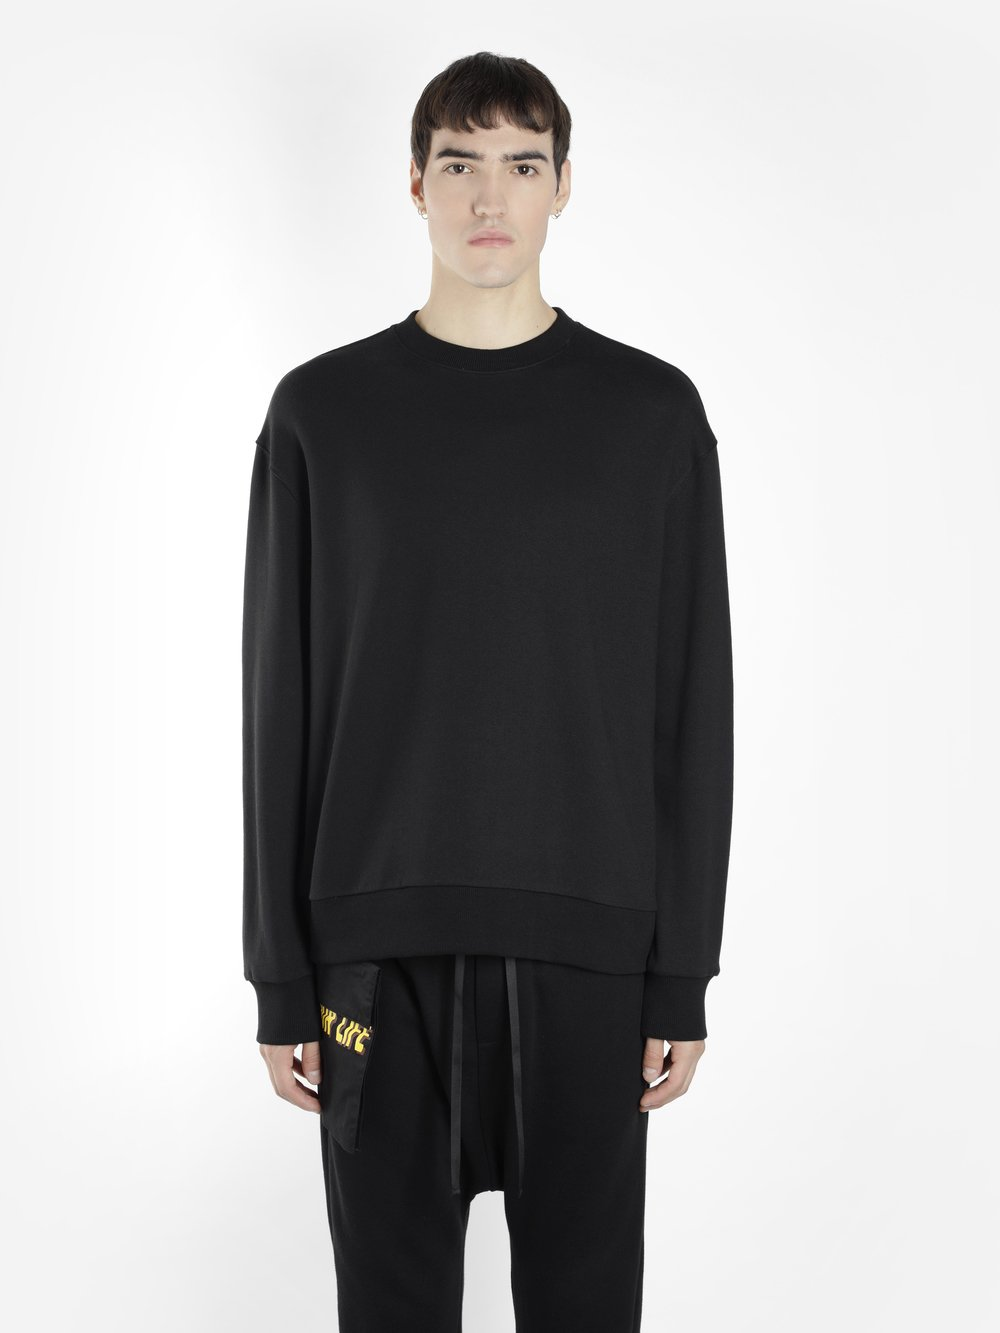 D BY D MEN'S BLACK CREWNECK SWEATER WITH BACK LACING